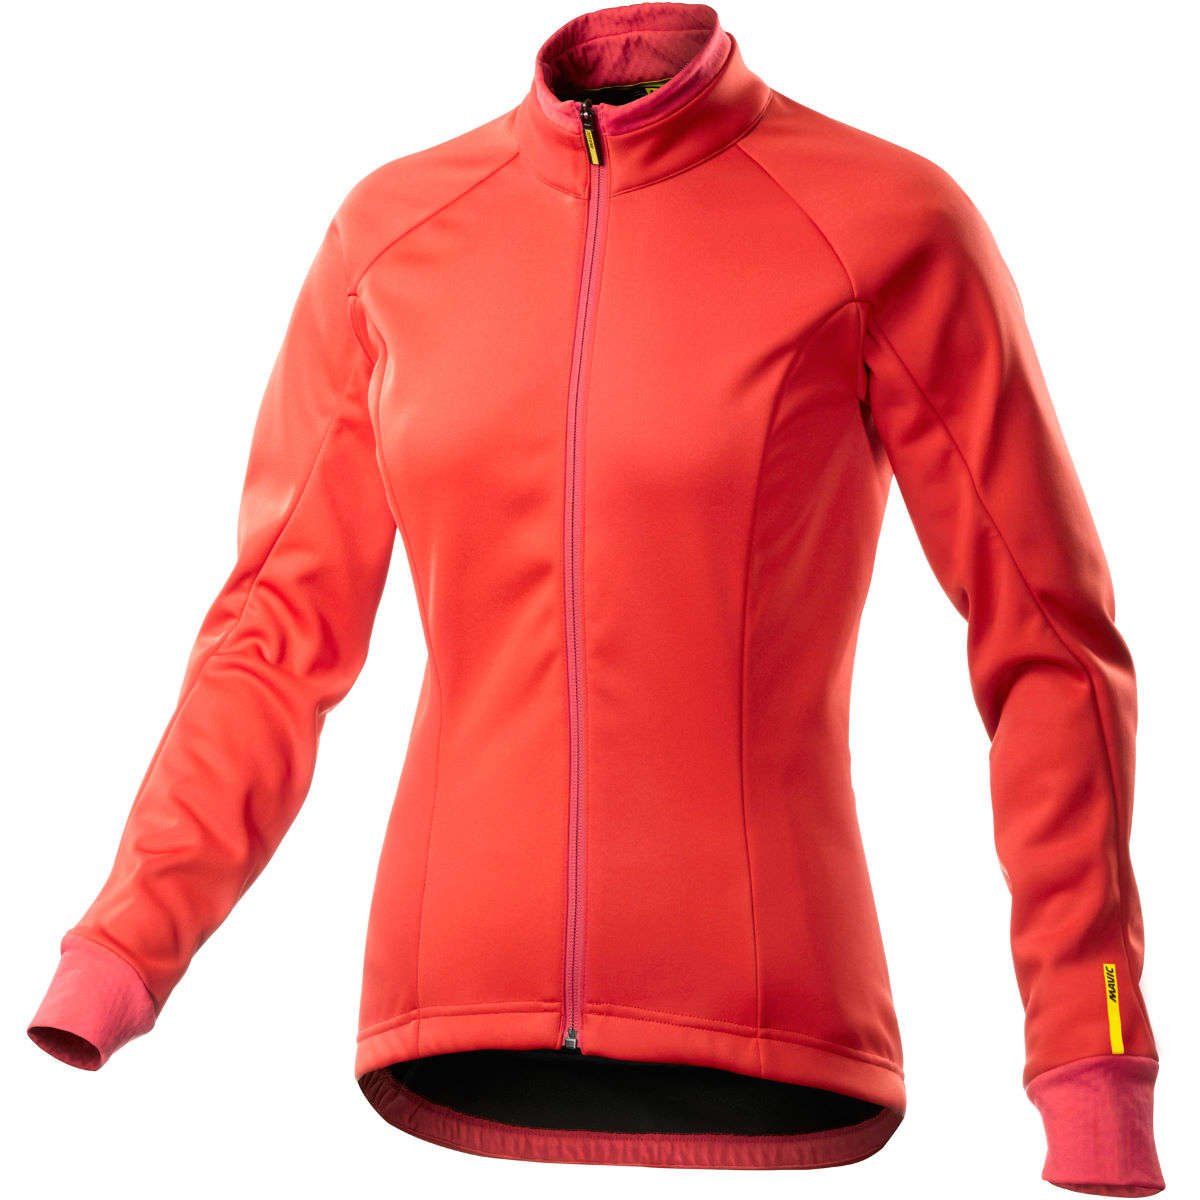 Veste Femme Mavic Aksium Thermo - S Racing Red  Coupe-vents vélo